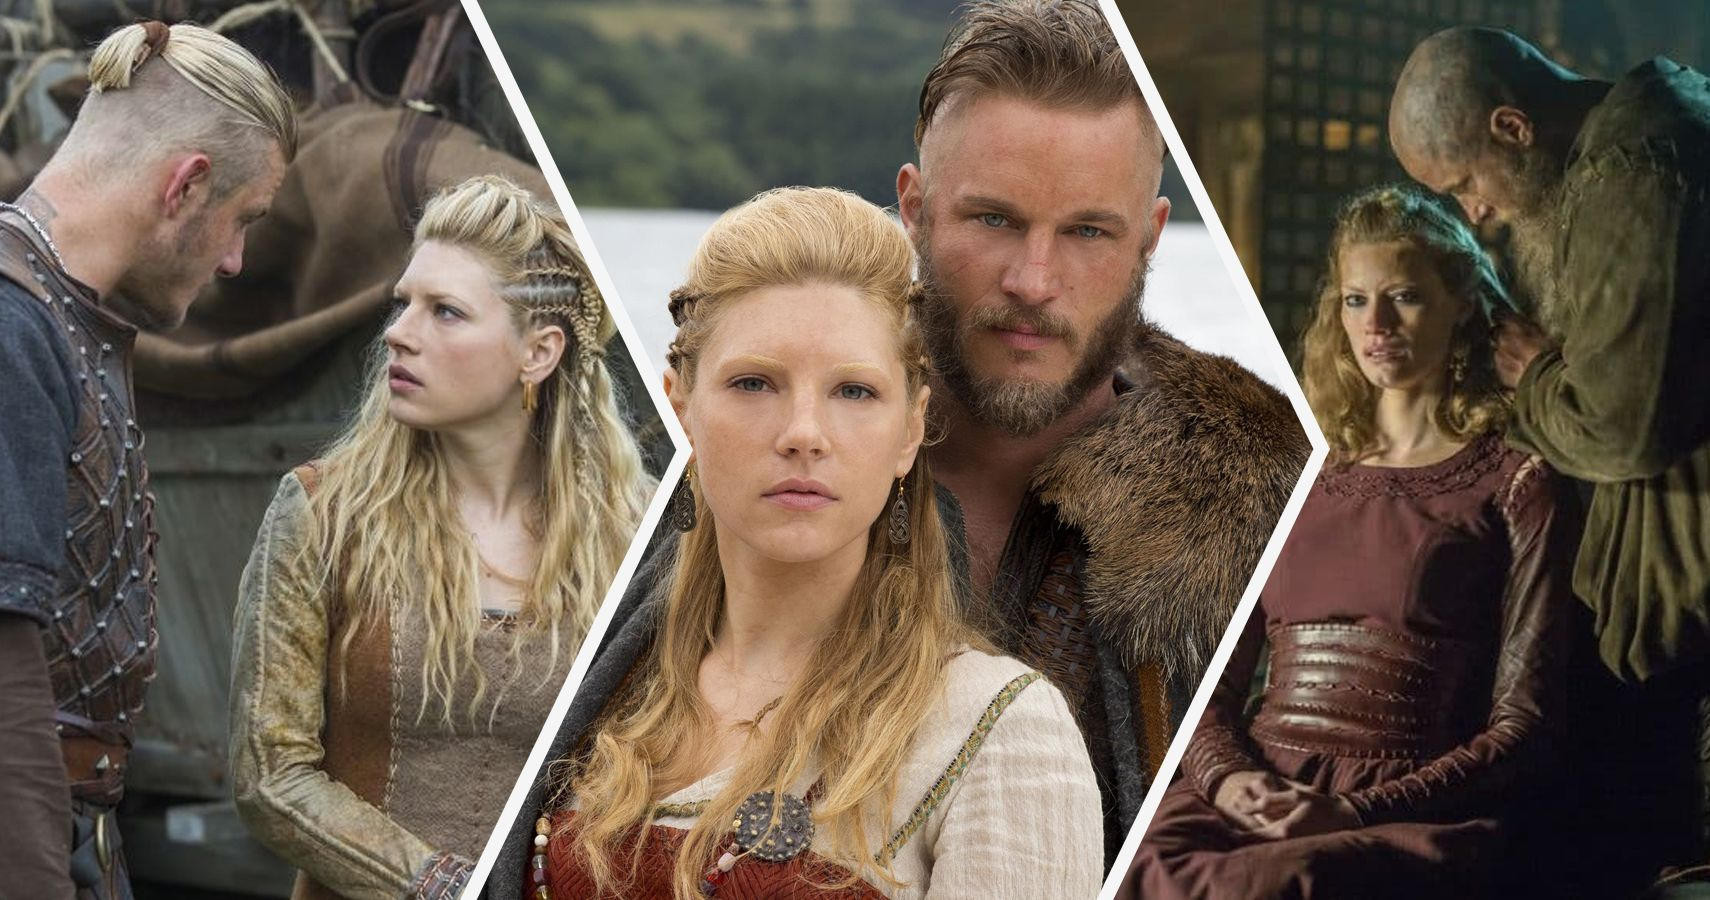 Have An Inquiring Mind Vikings Sword Of Lagertha Collectibles Knives, Swords & Blades